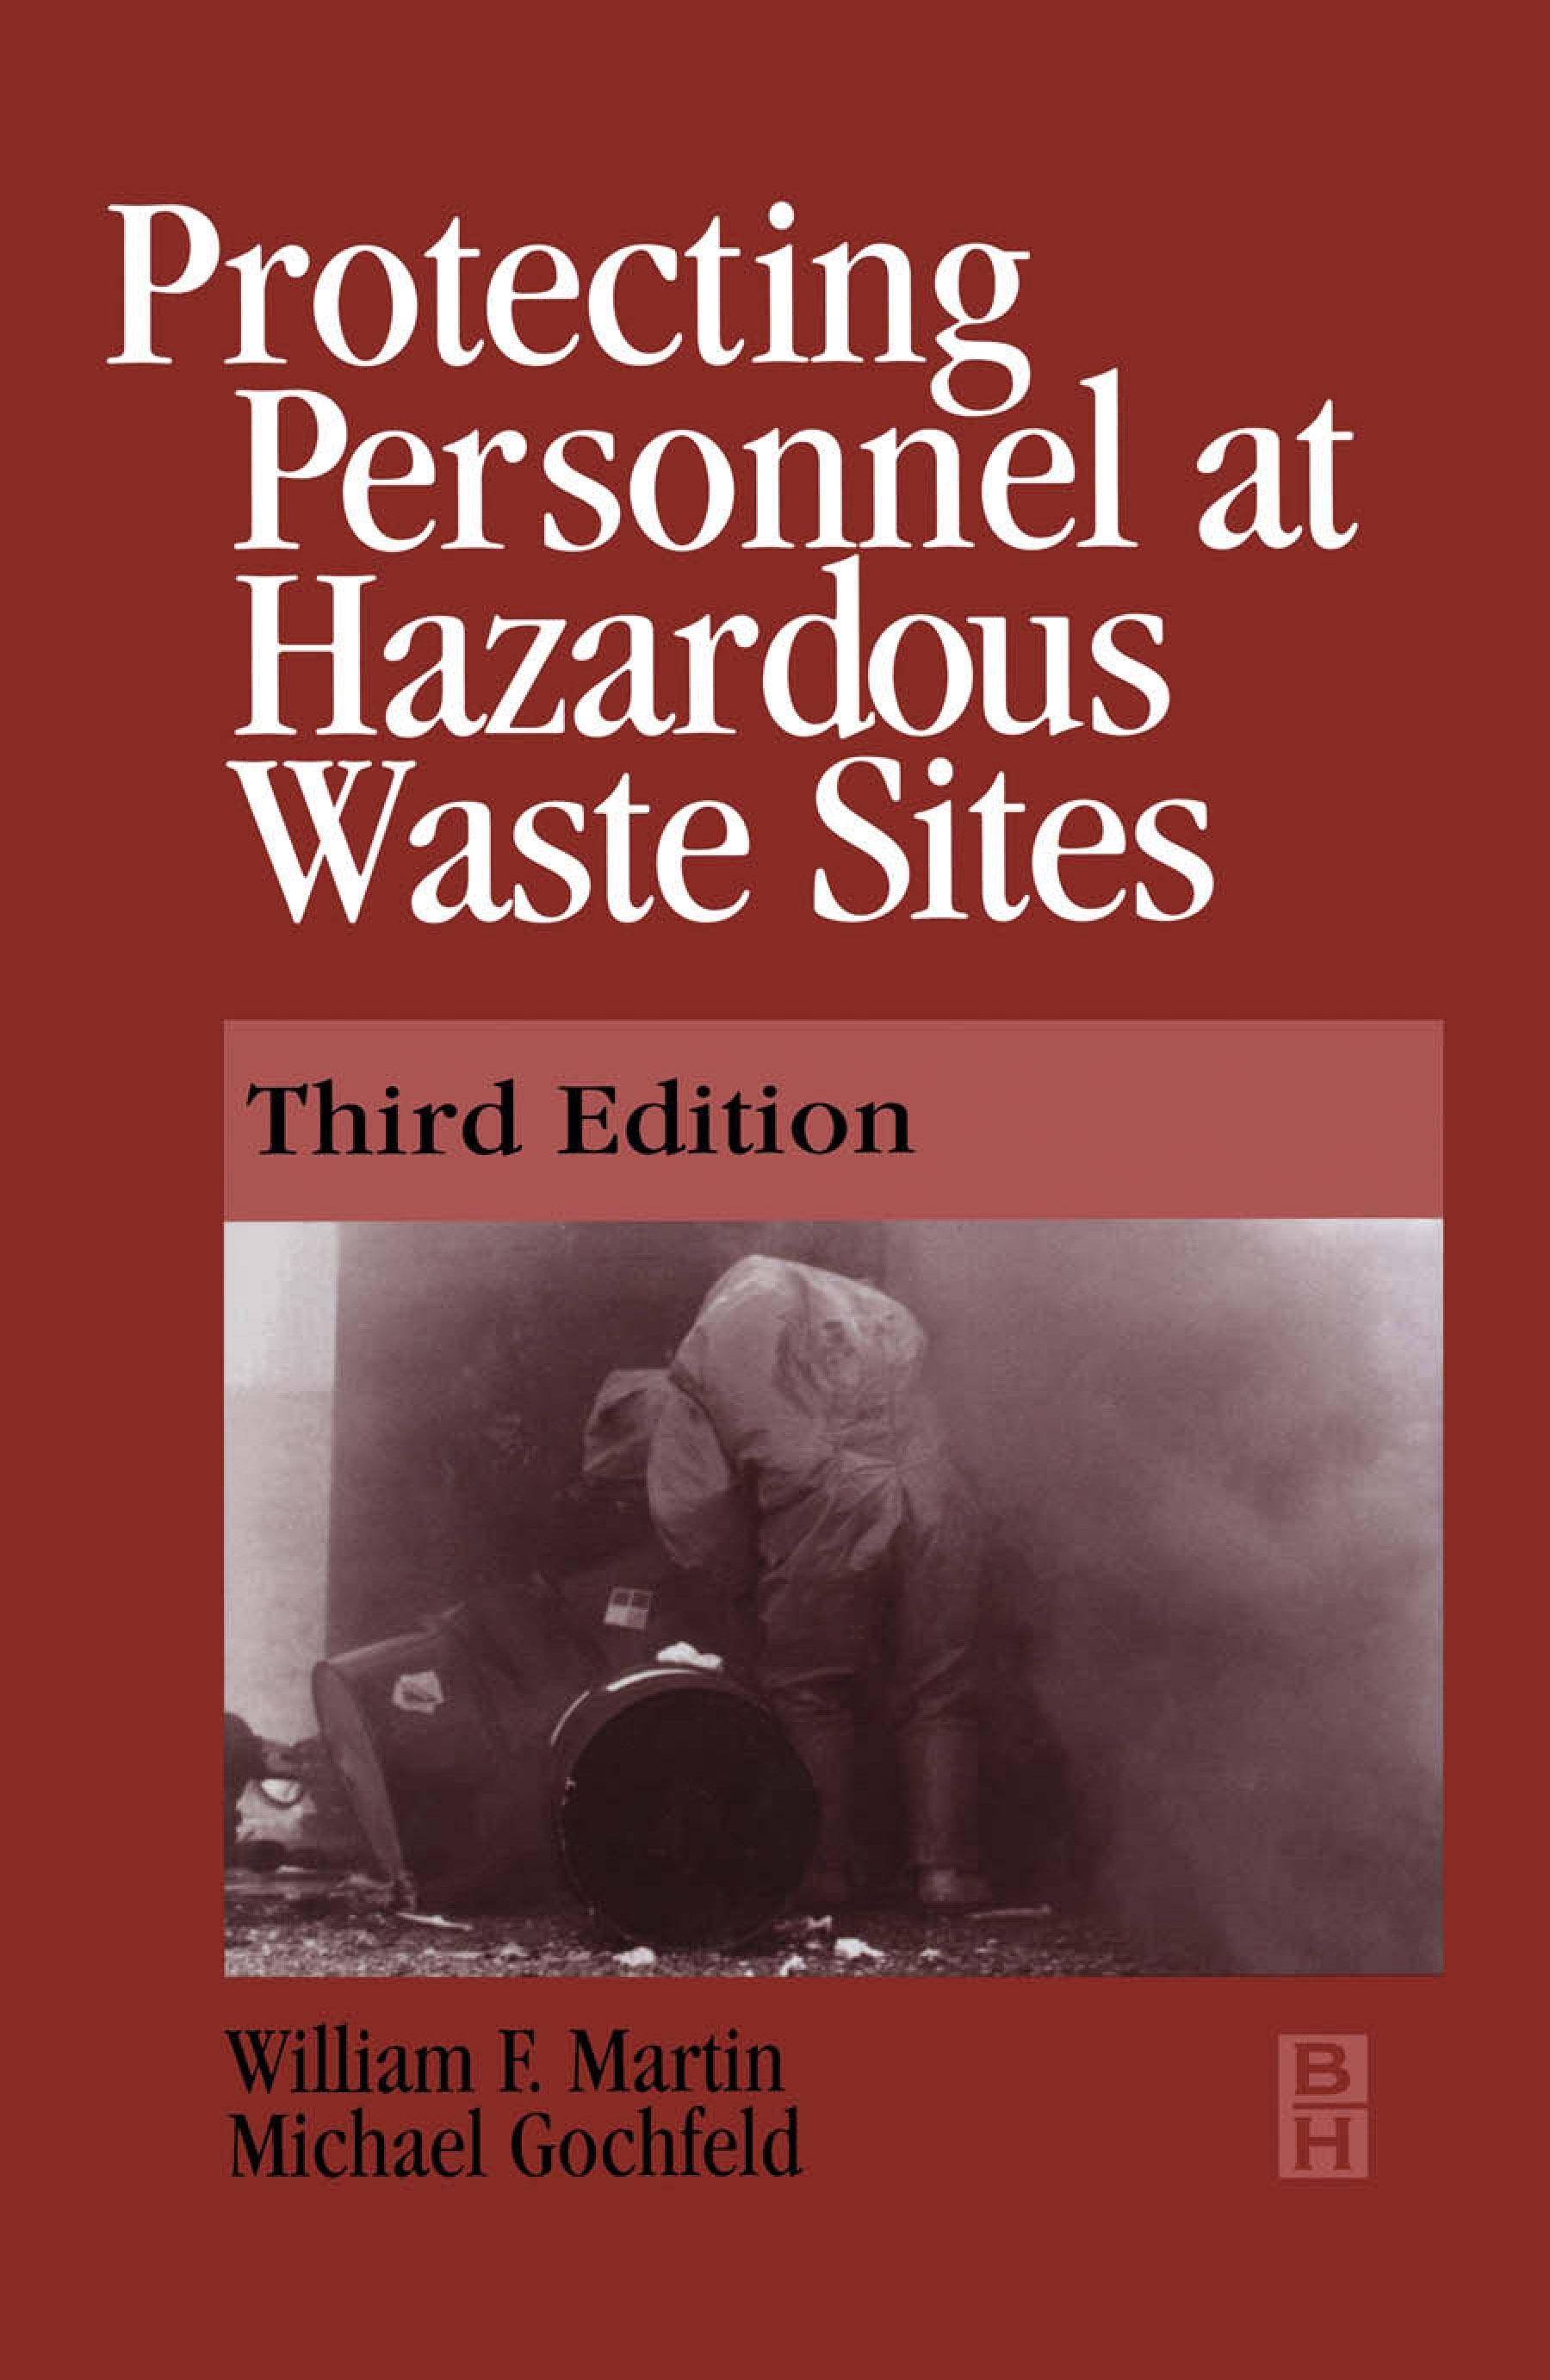 Protecting Personnel at Hazardous Waste Sites 3E EB9780080539959